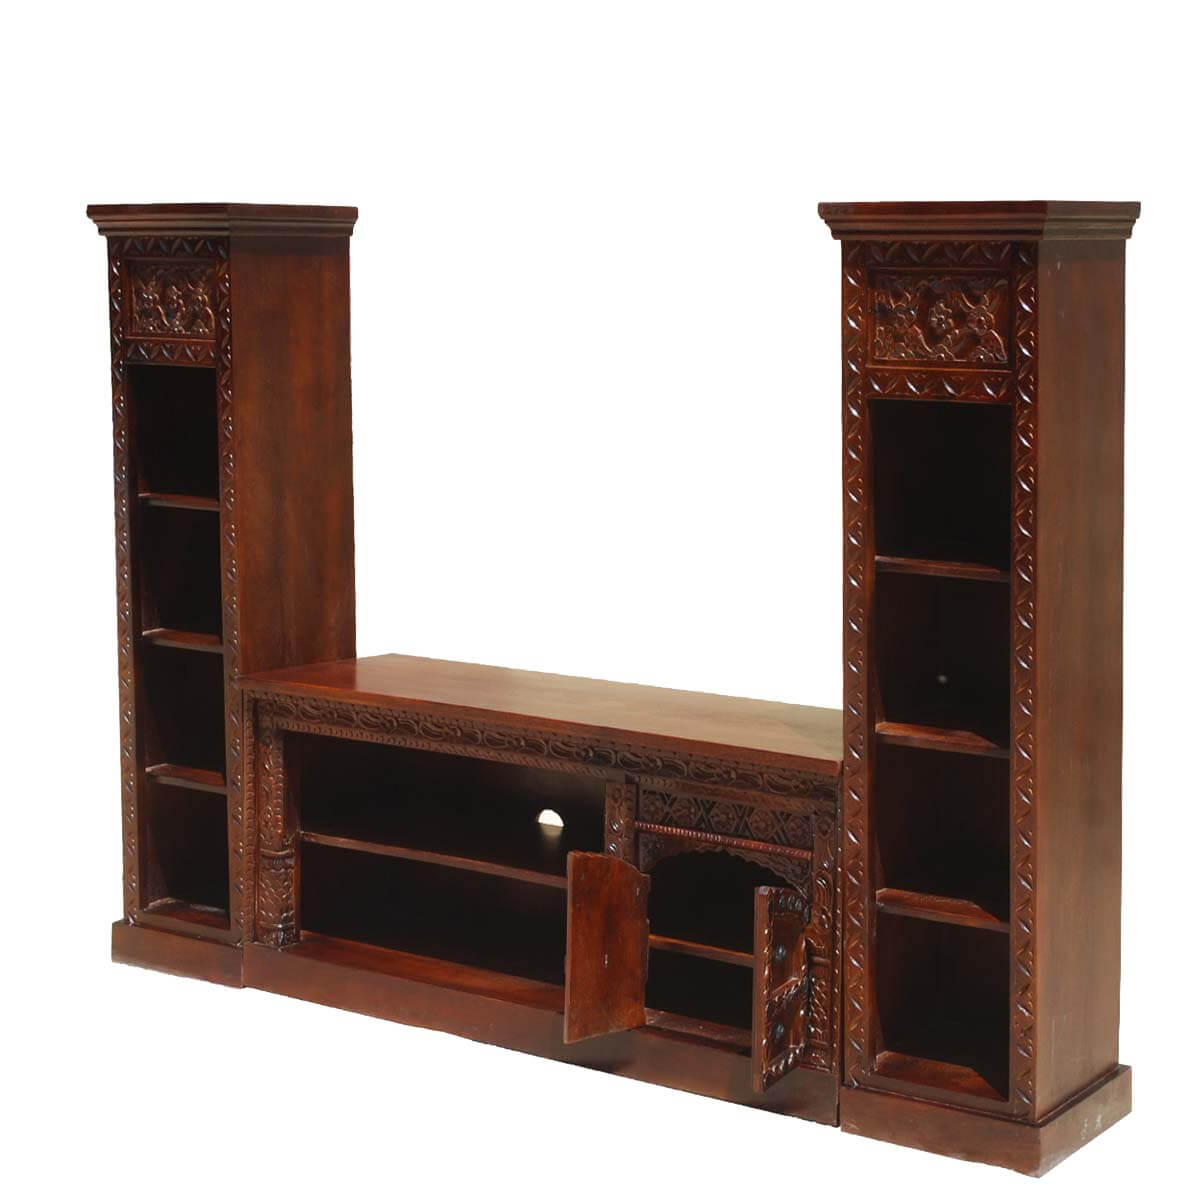 Rustic solid wood twin bookcase media console tv stand for Media center with bookshelves